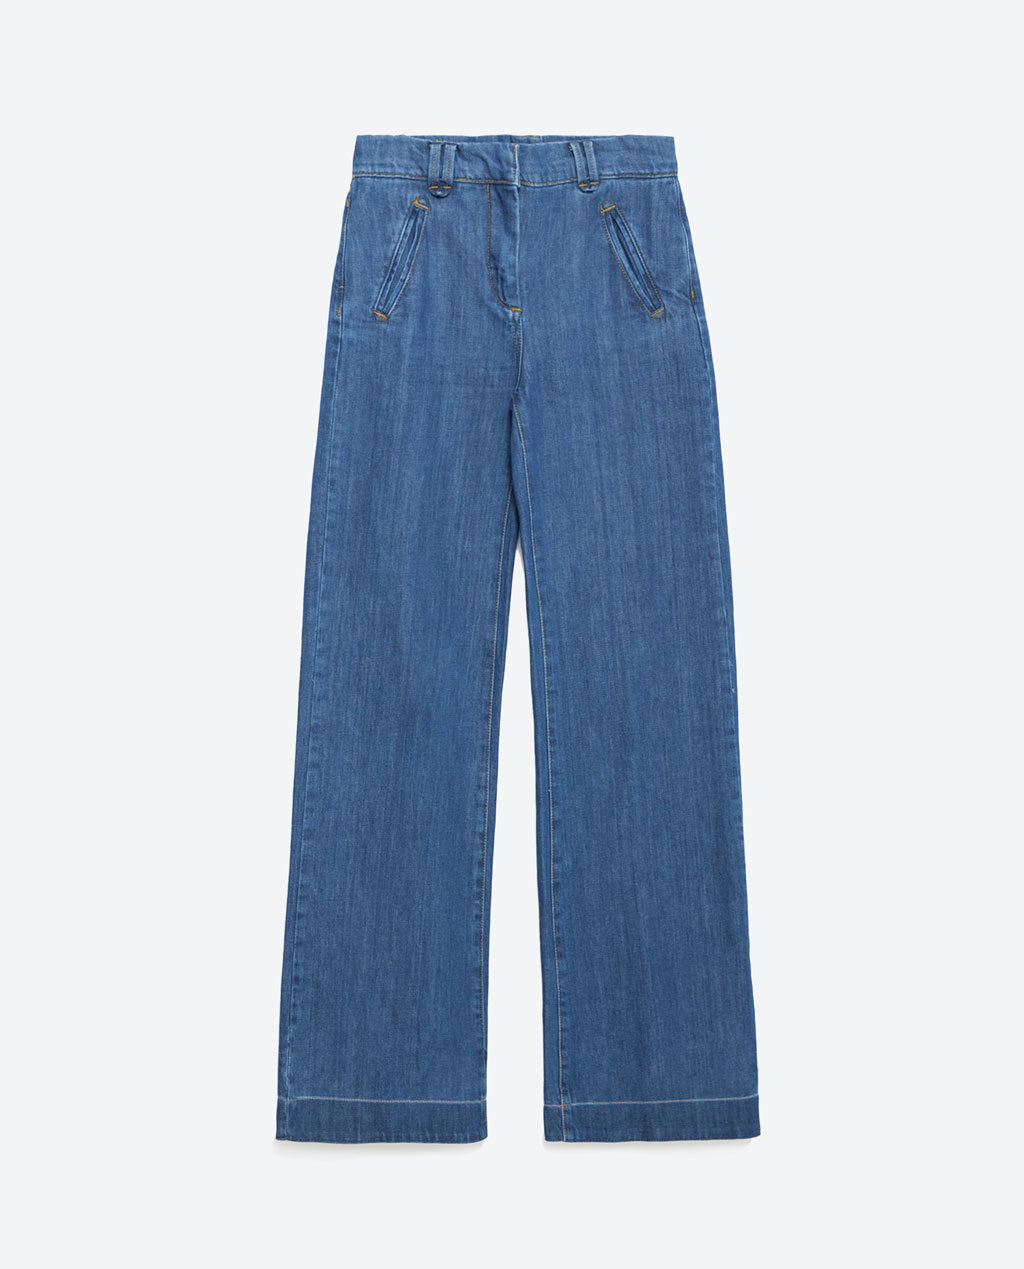 Flared Trousers - style: flares; length: standard; pattern: plain; waist: high rise; predominant colour: denim; occasions: casual; fibres: cotton - 100%; texture group: denim; pattern type: fabric; season: a/w 2015; wardrobe: basic